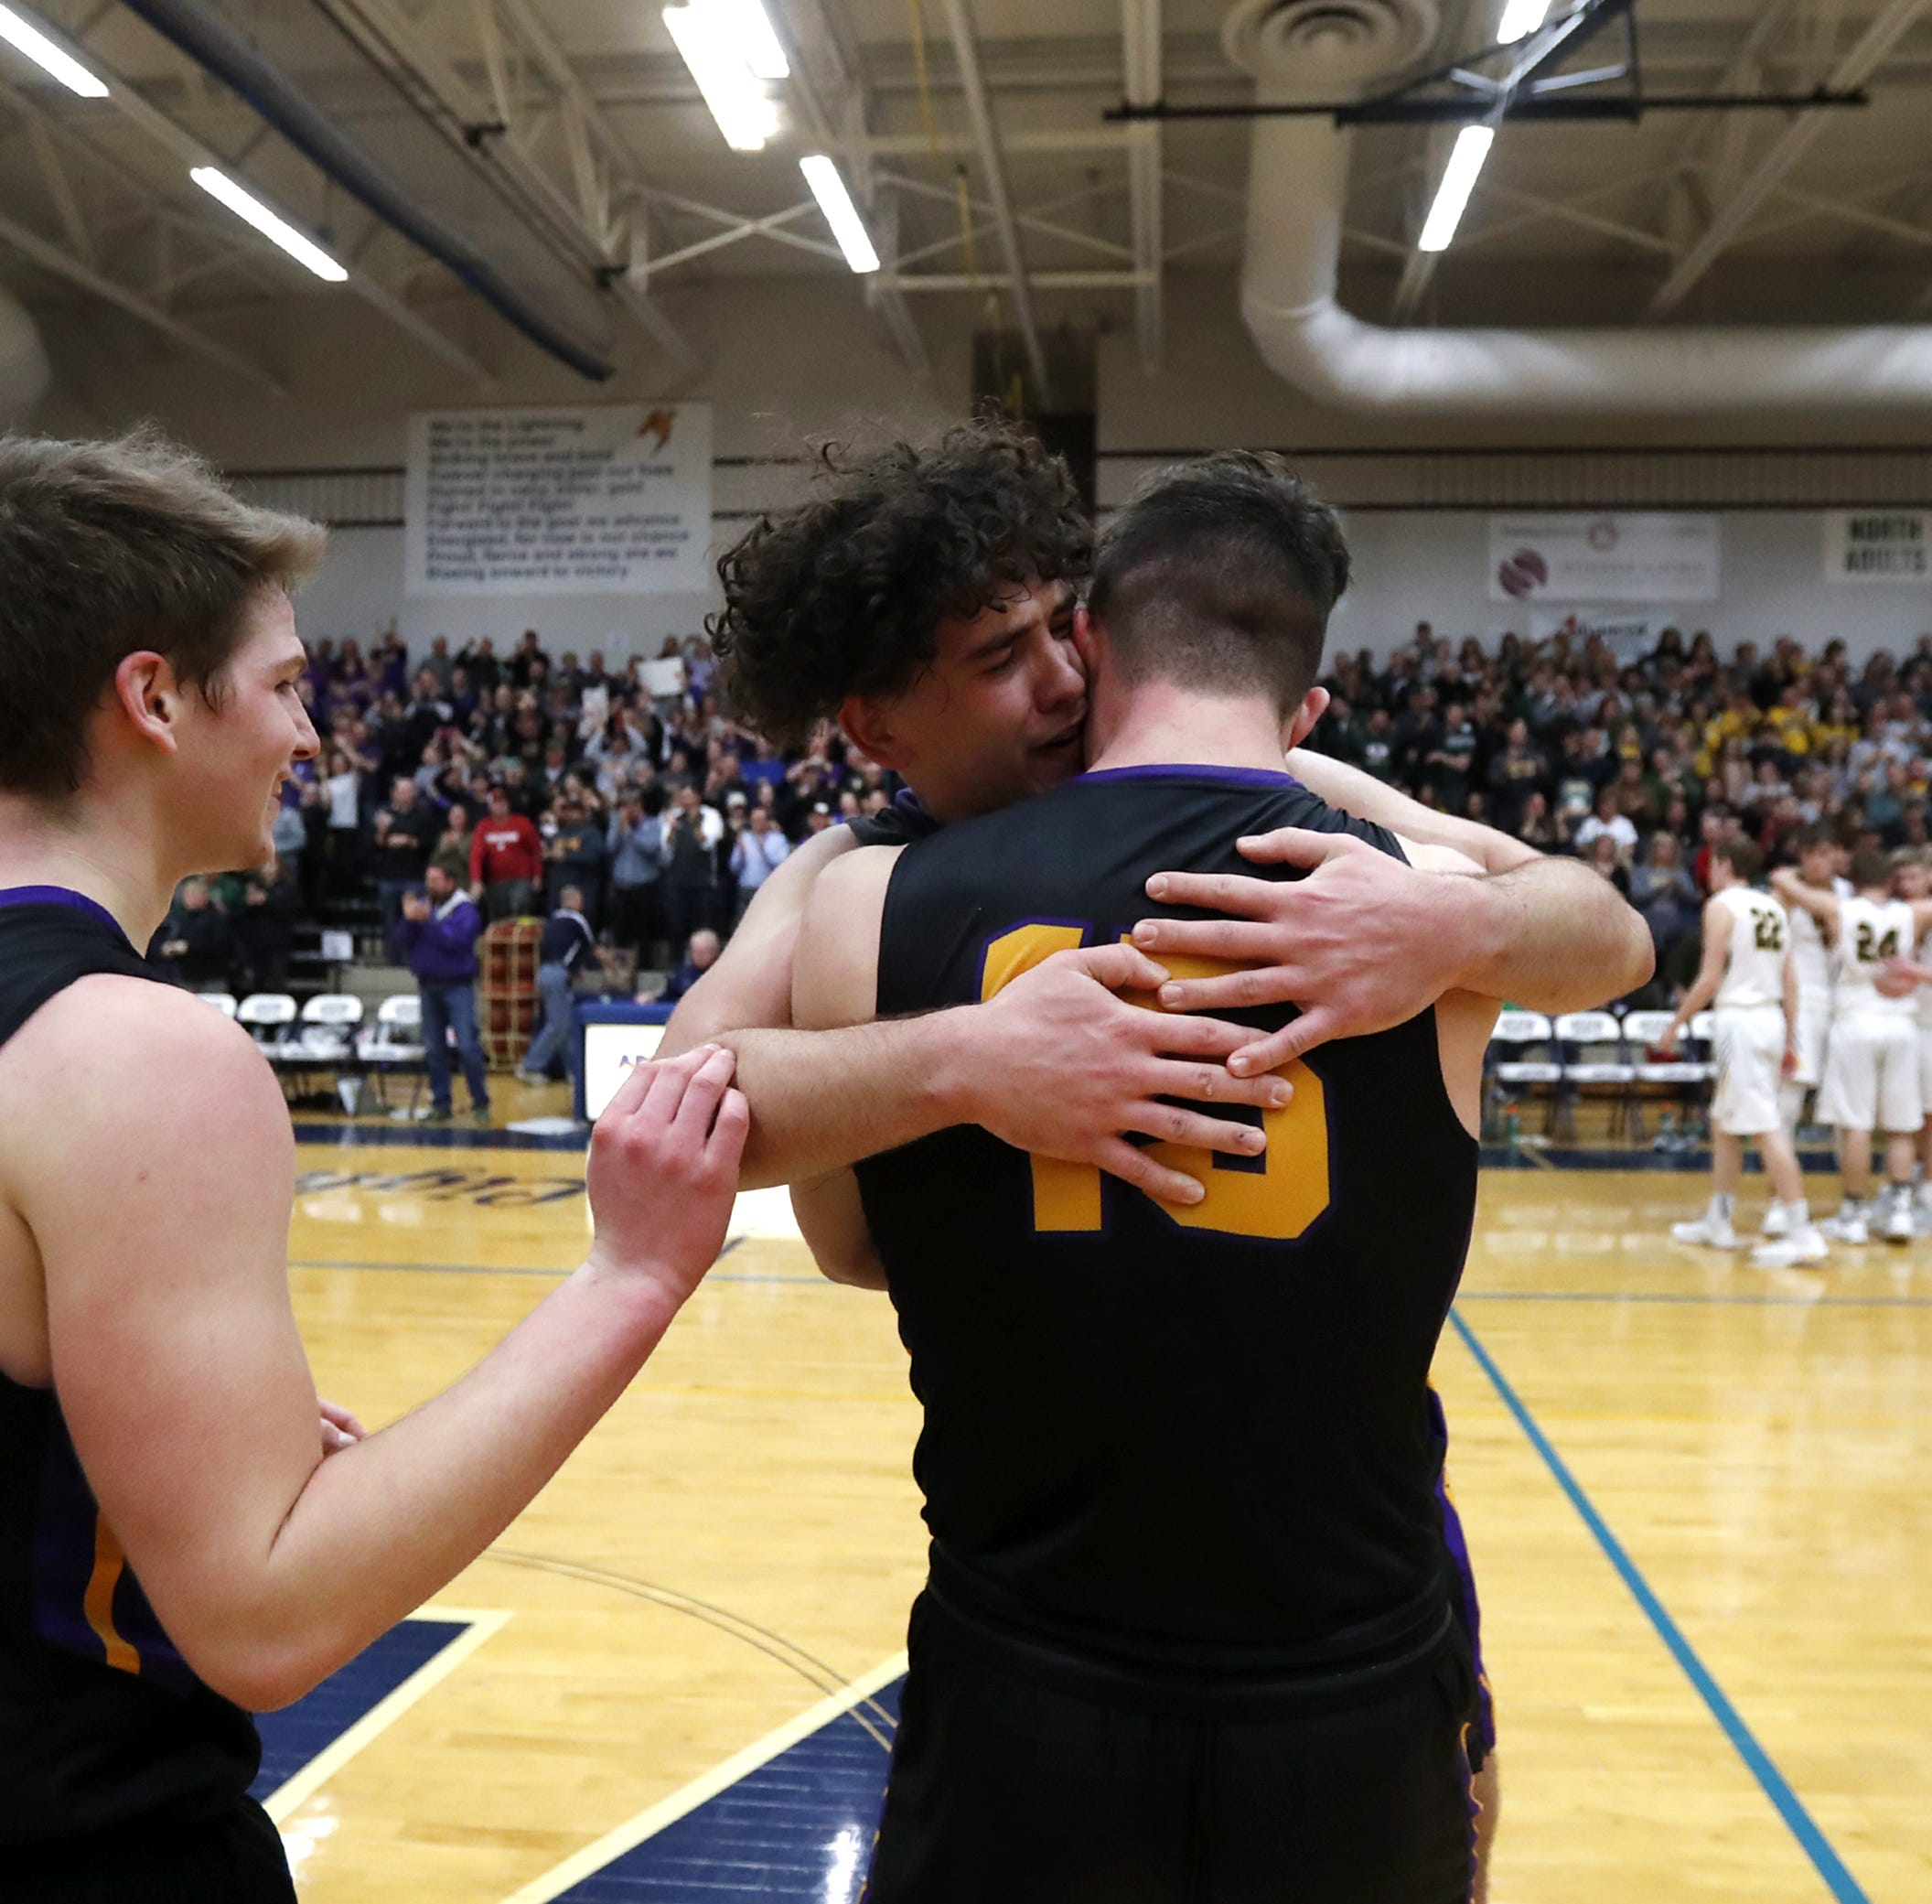 WIAA state basketball: Denmark's Brady Jens doesn't let tragedy stop him